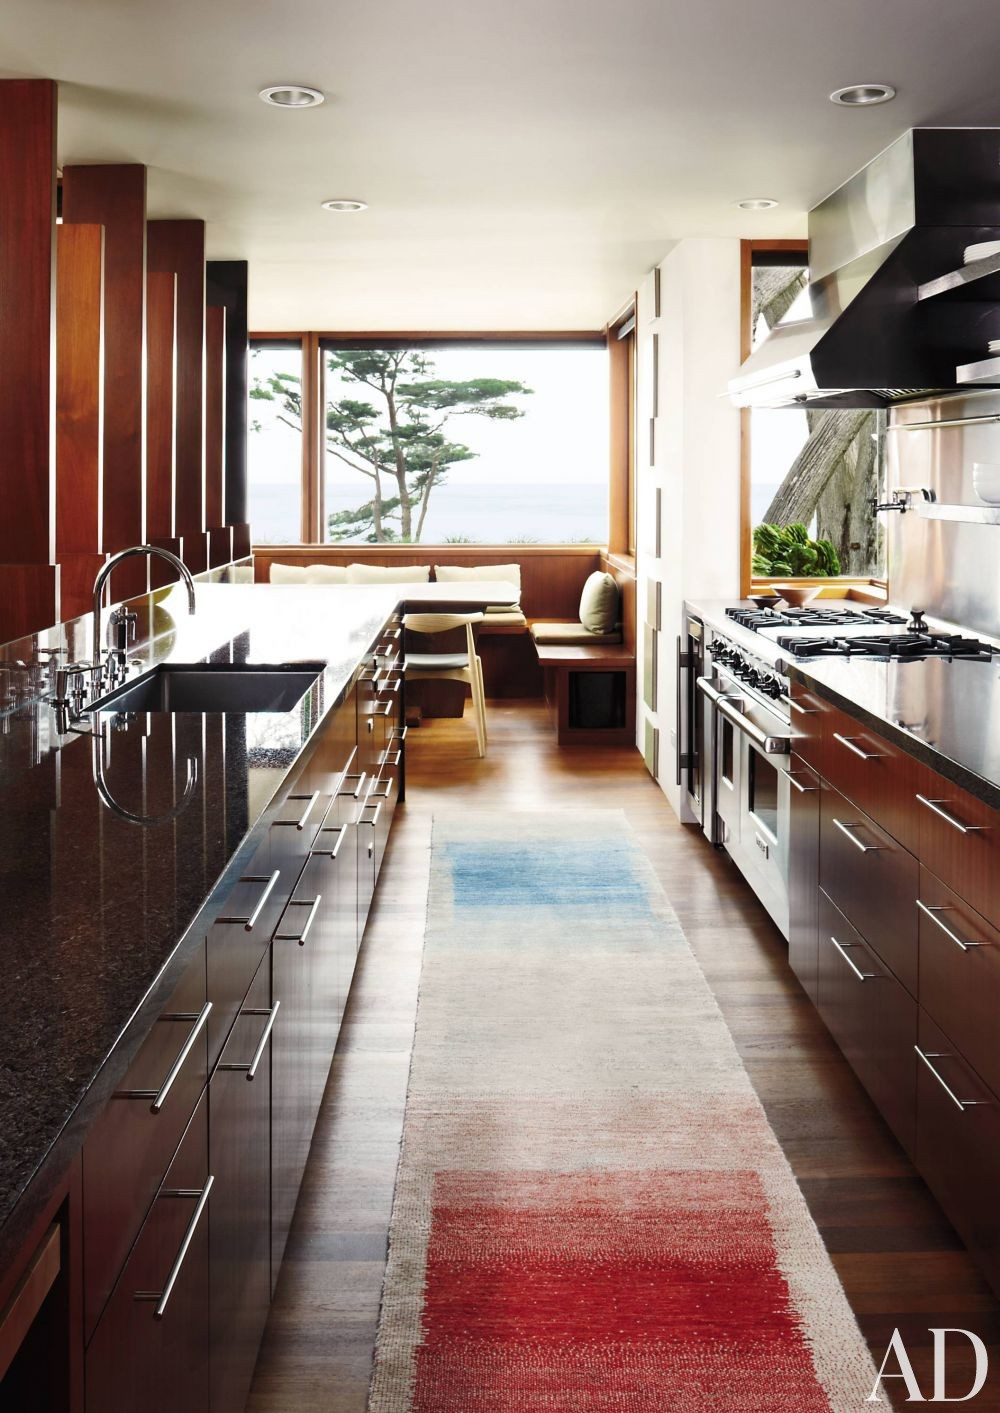 Modern Kitchen and Dirk Denison in Carmel-by-the-Sea, California